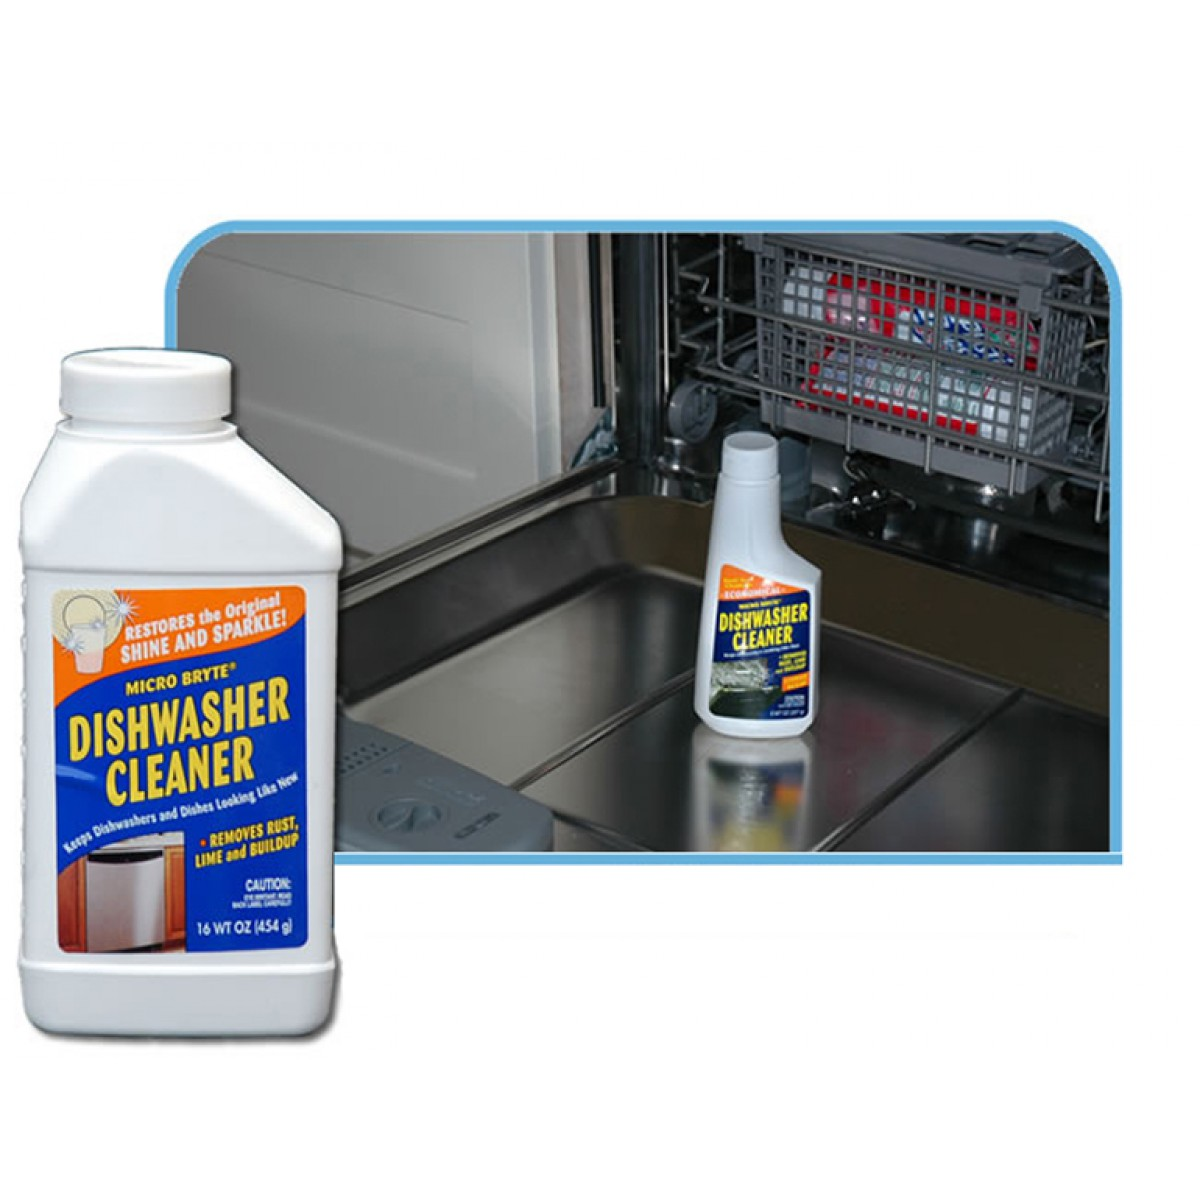 34608 Micro Bryte 16 Ounce Dishwasher Cleaner